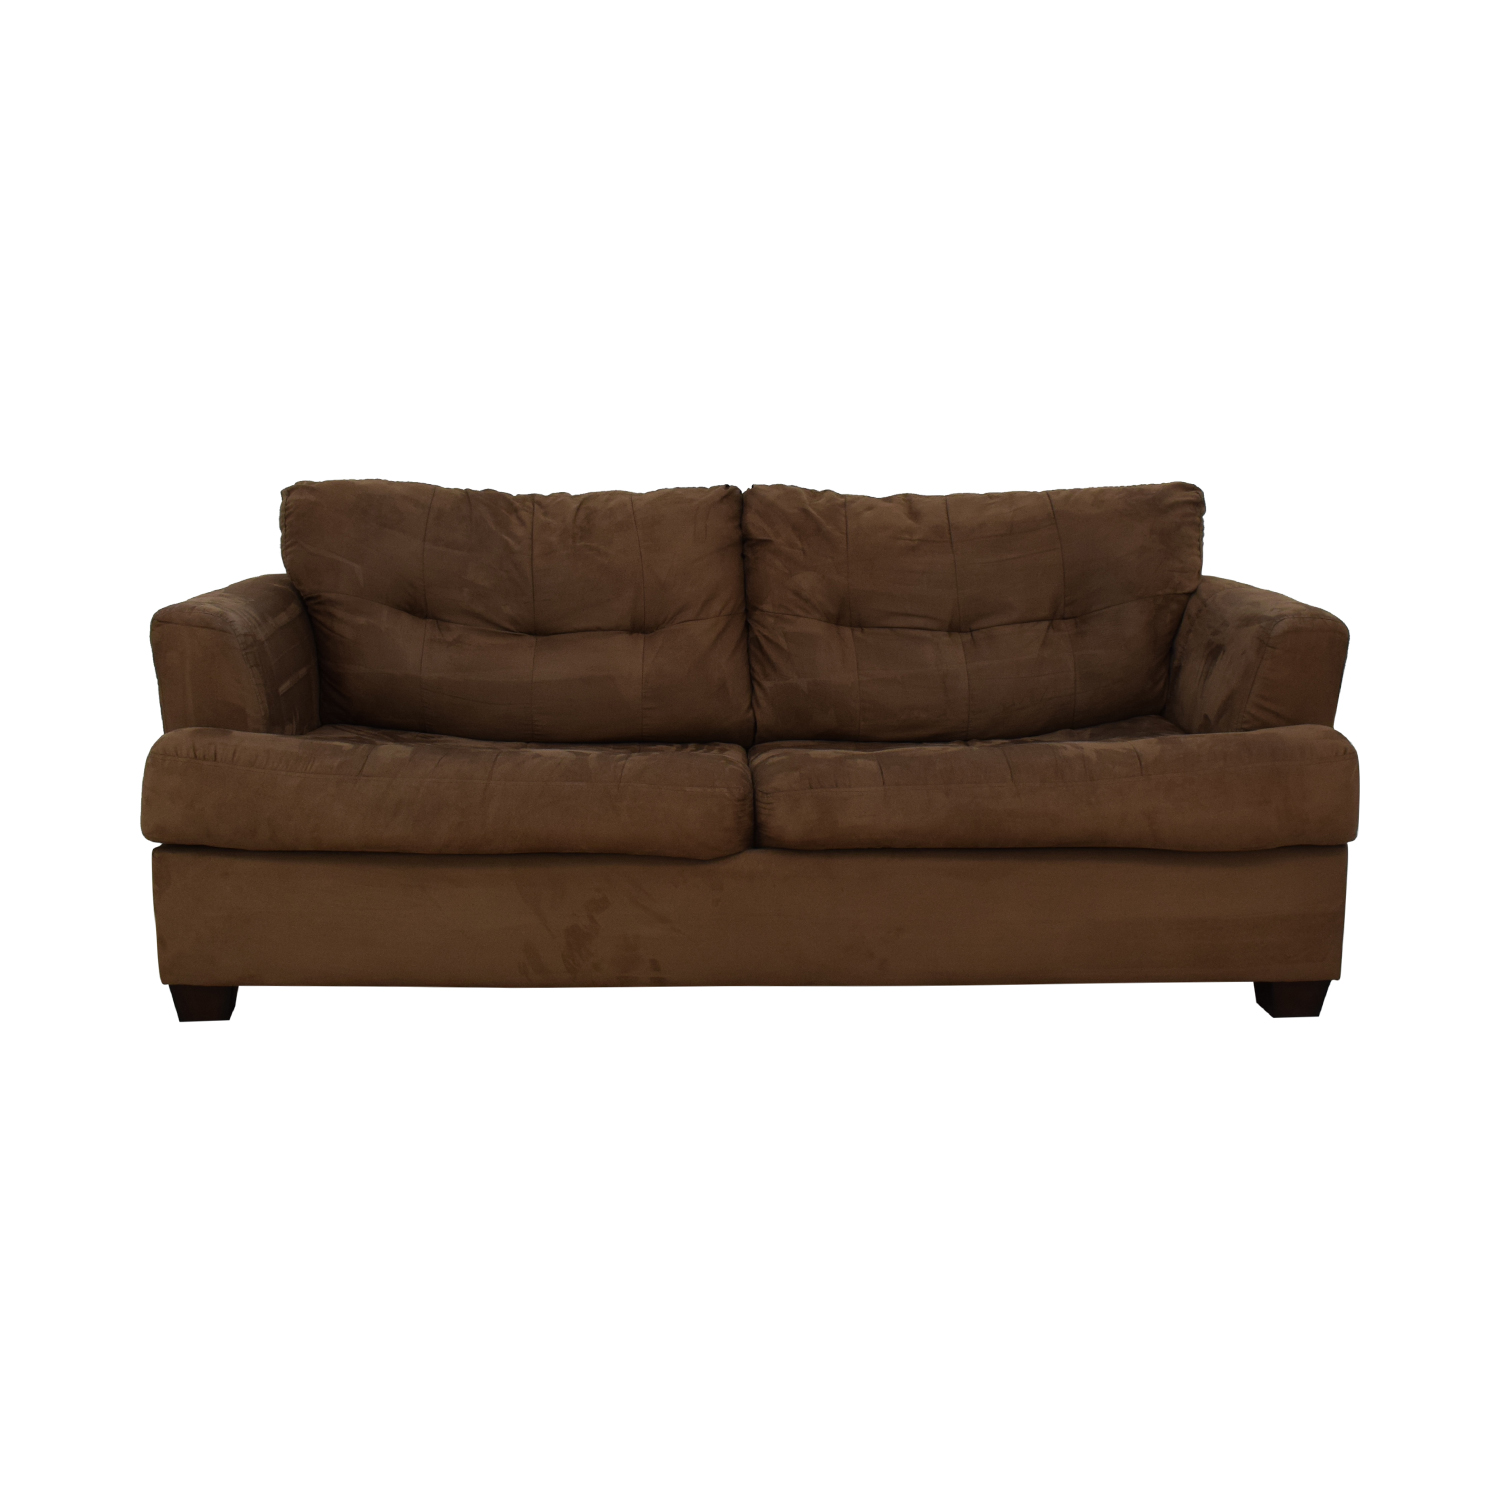 Jennifer Convertibles Queen Sleeper Sofa Furniture Sofas